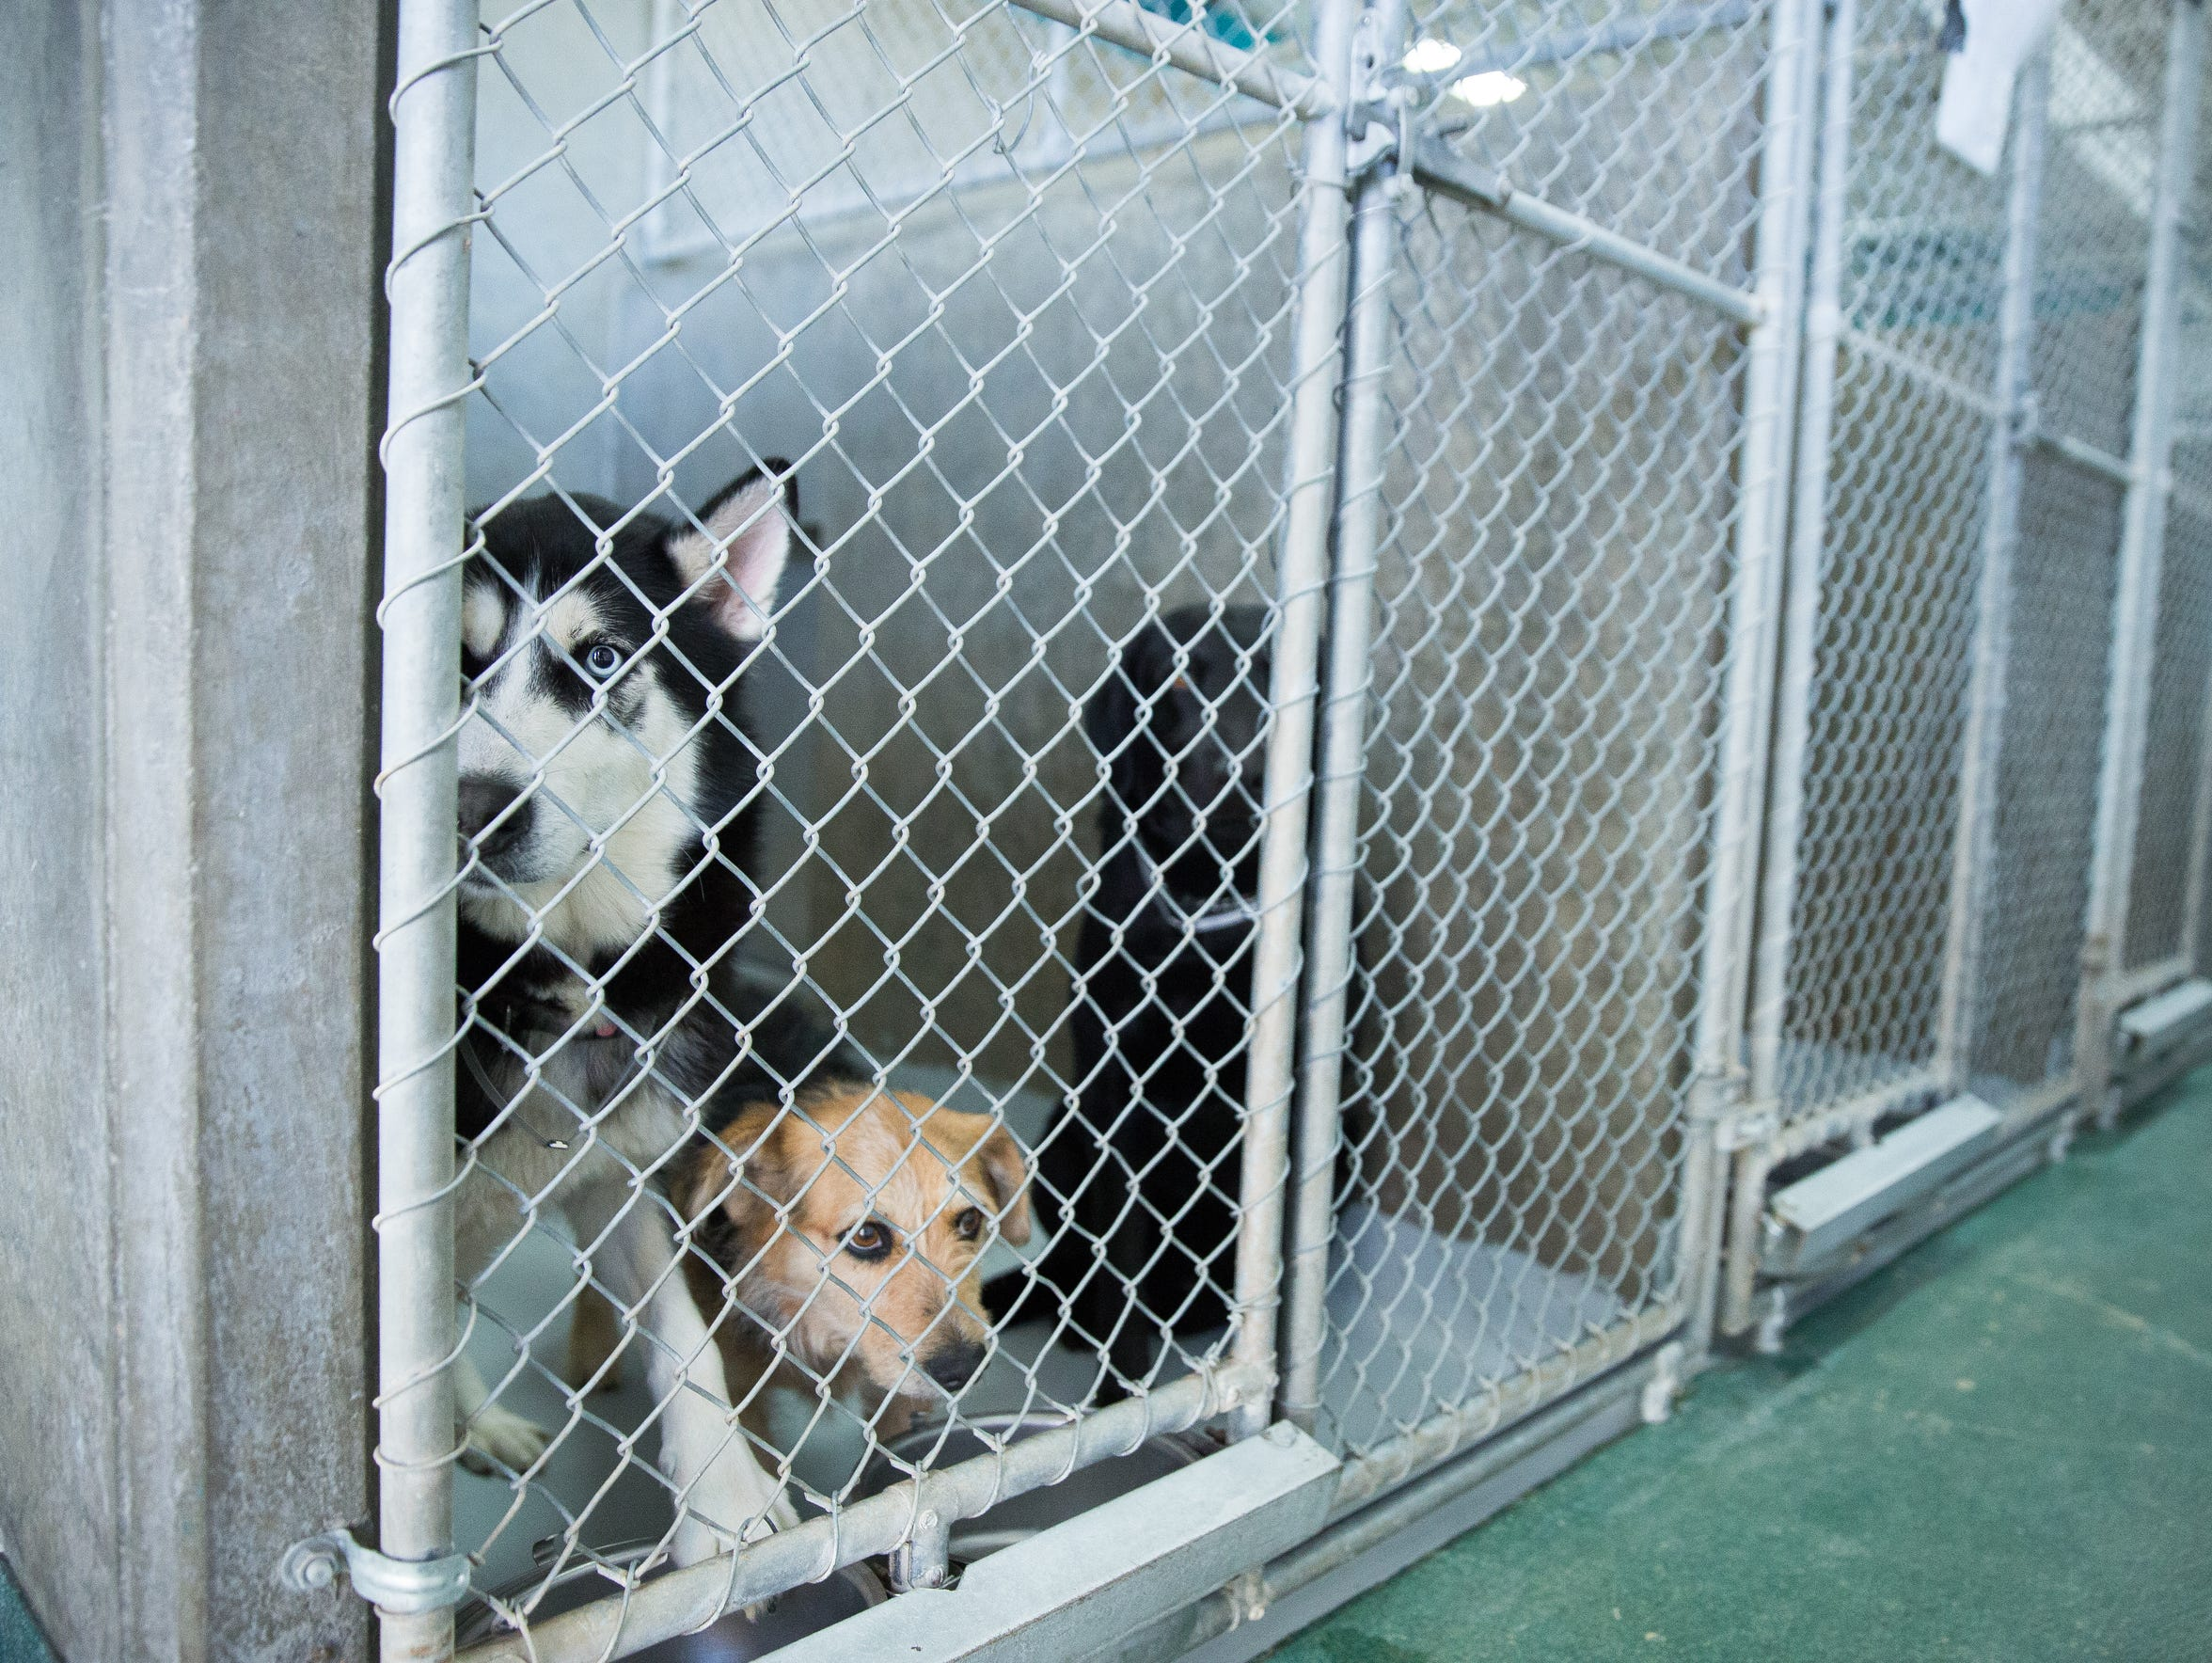 The Animal Service Center of the Mesilla Valley is the shelterwith the highest intake of animalsper capitain the nation.